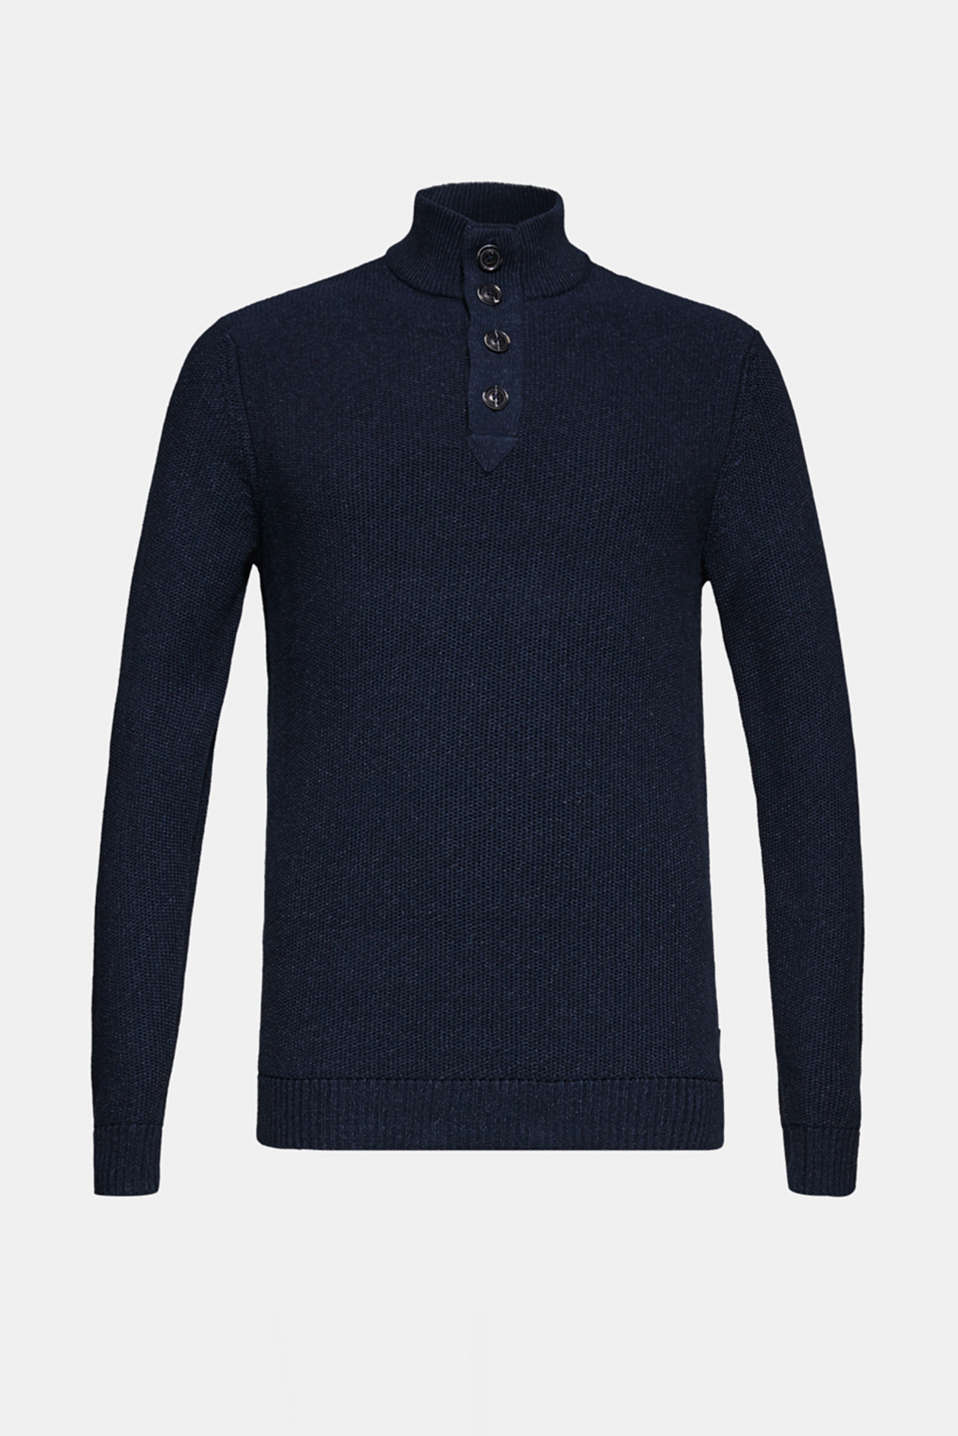 Knitted button-neck jumper in 100% cotton, NAVY, detail image number 8